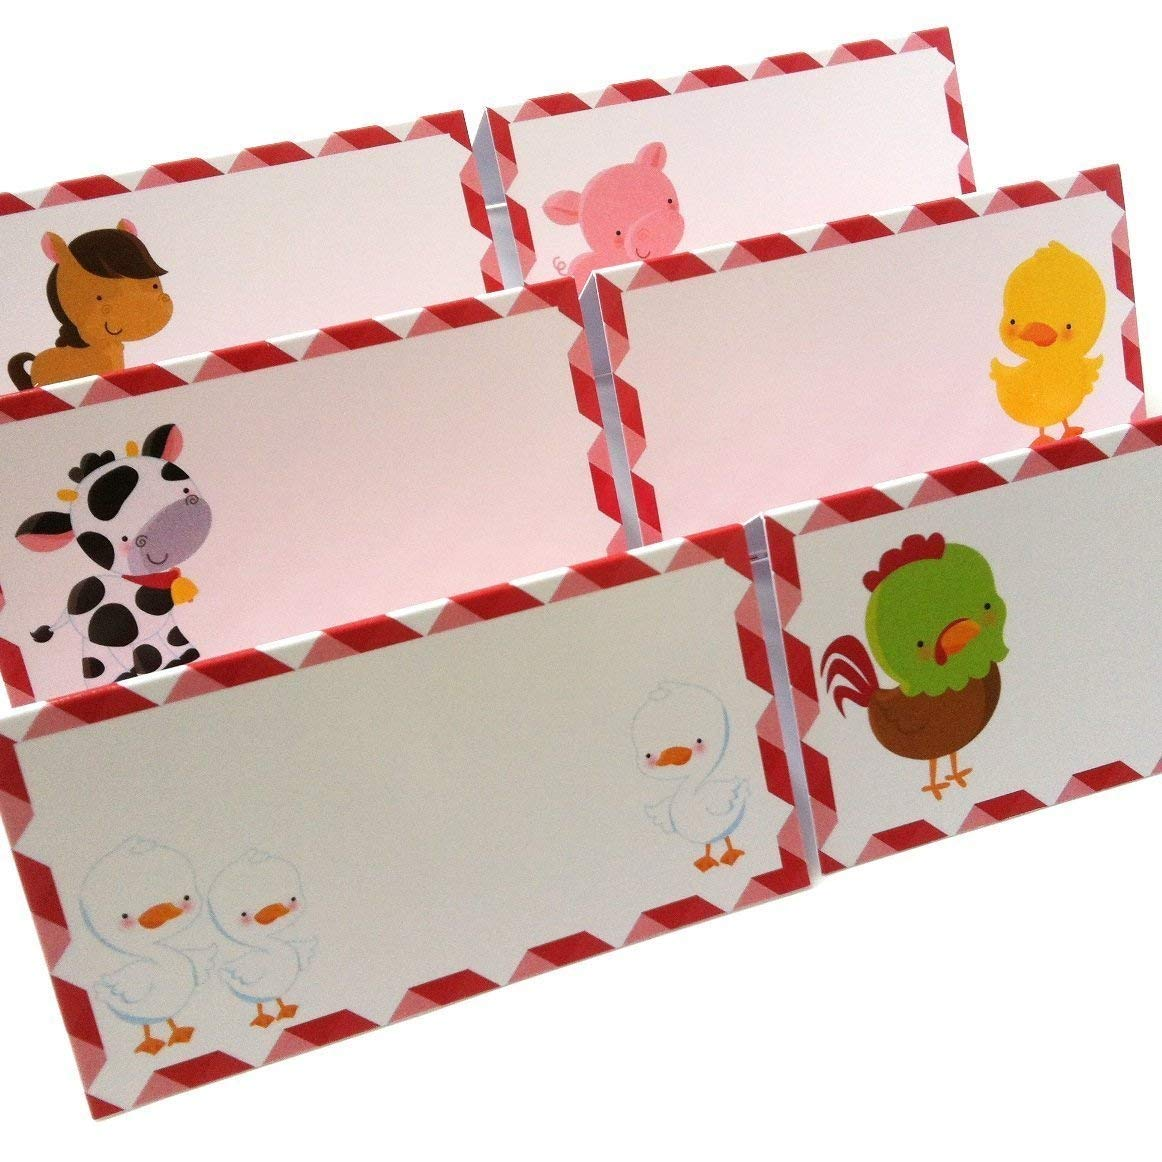 Boy Girl Birthday Baby Shower Party Supplies Set of 12 Farm Animals Place Tent Cards